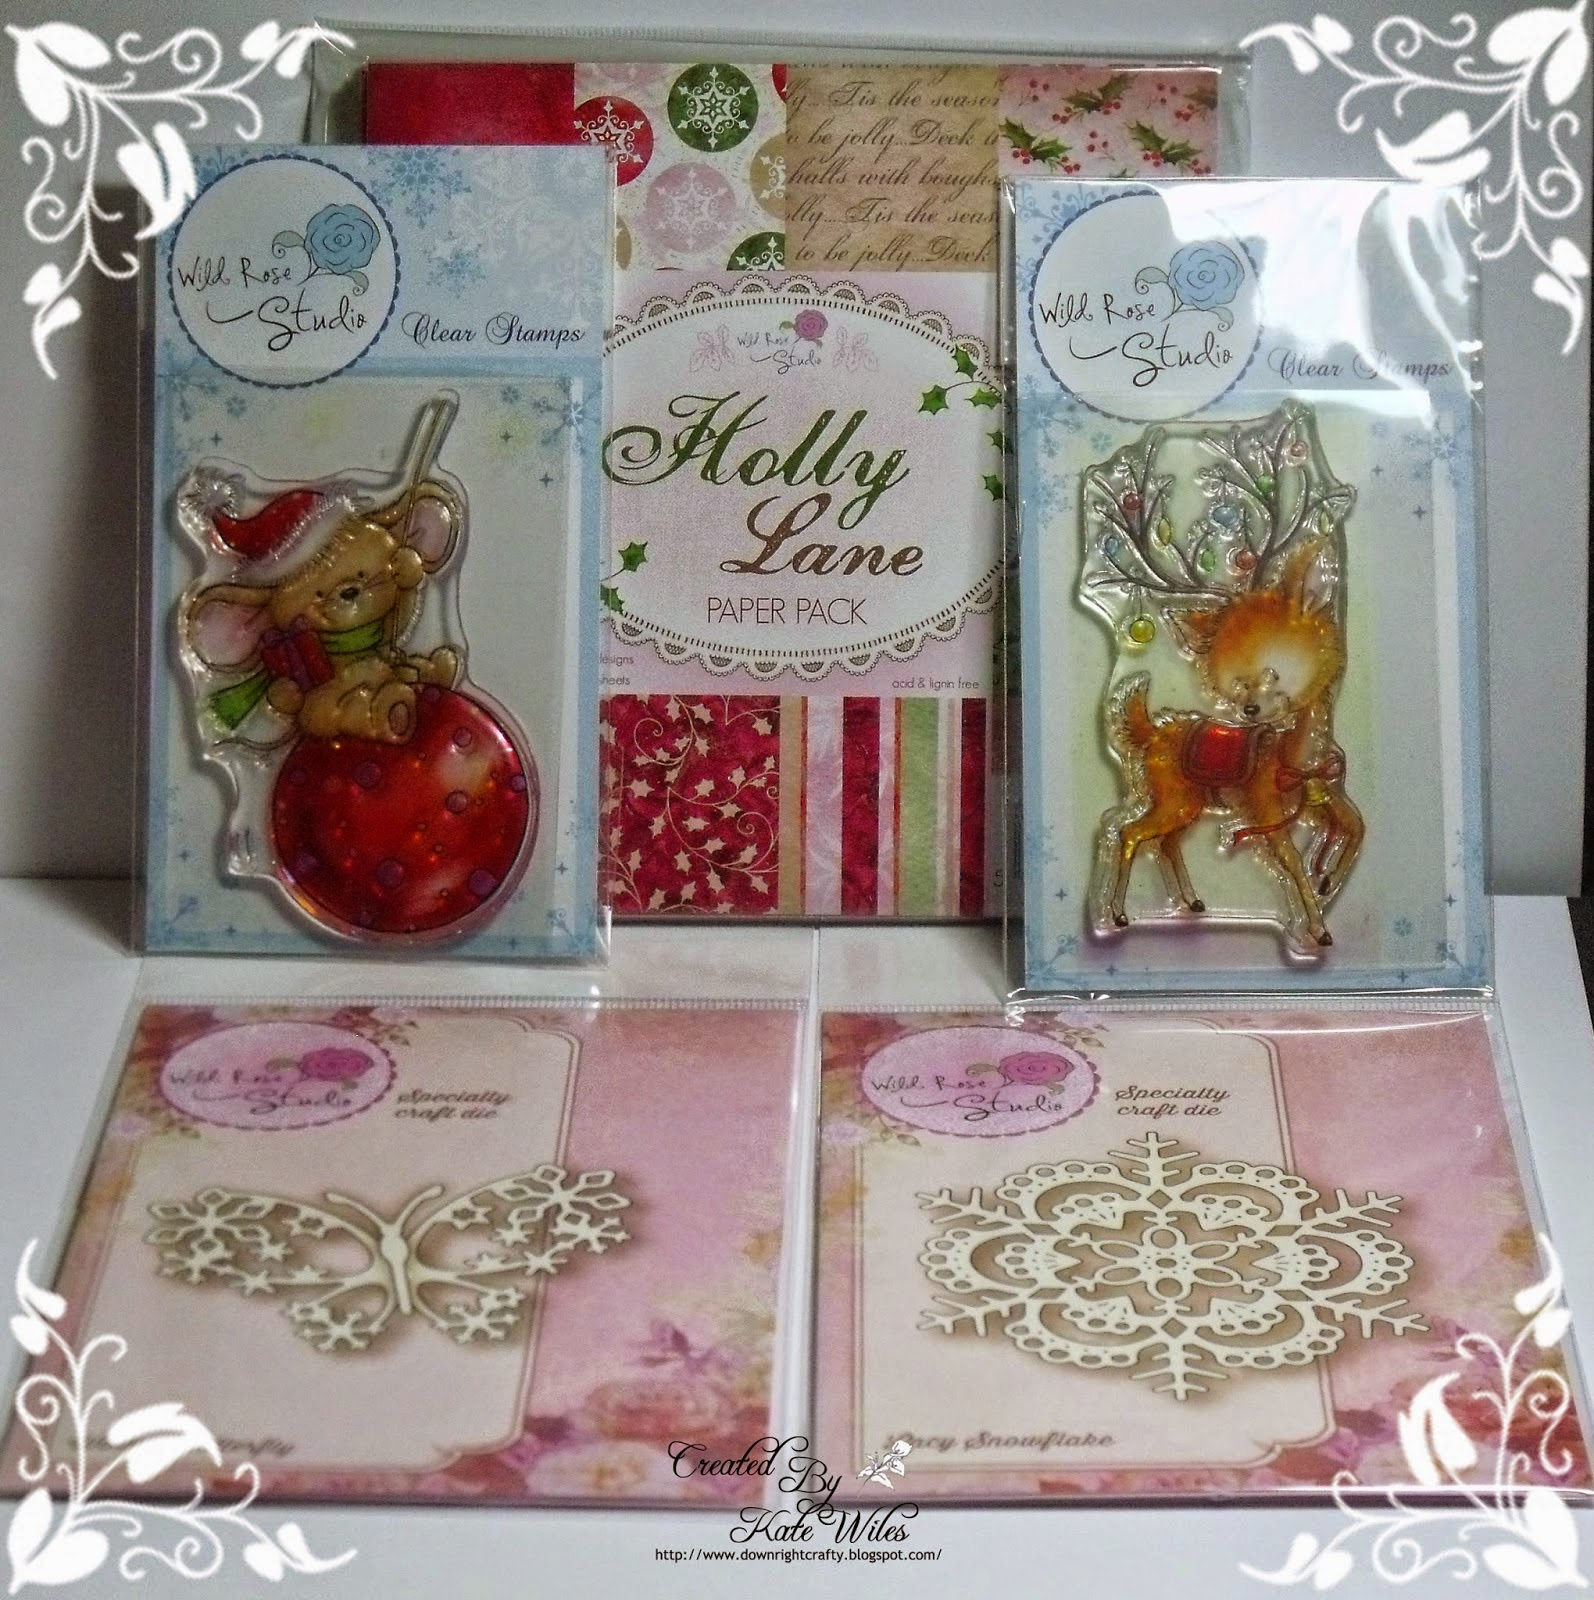 Blog Candy hos Wild Rose Studio